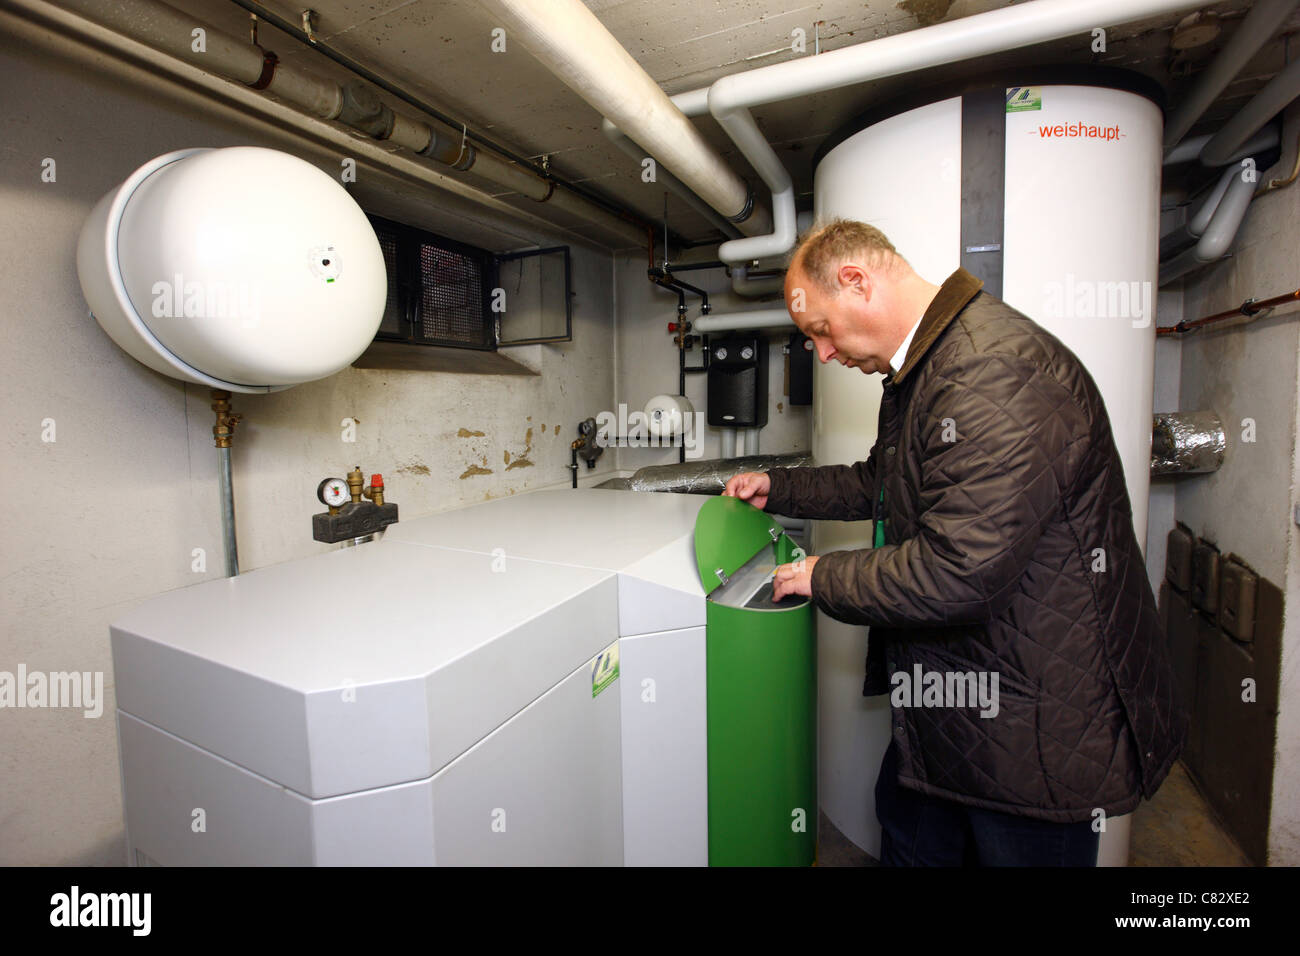 Wood Pellet Boiler >> Wood Pellet Boiler Of A Central Heating System In A Private Home